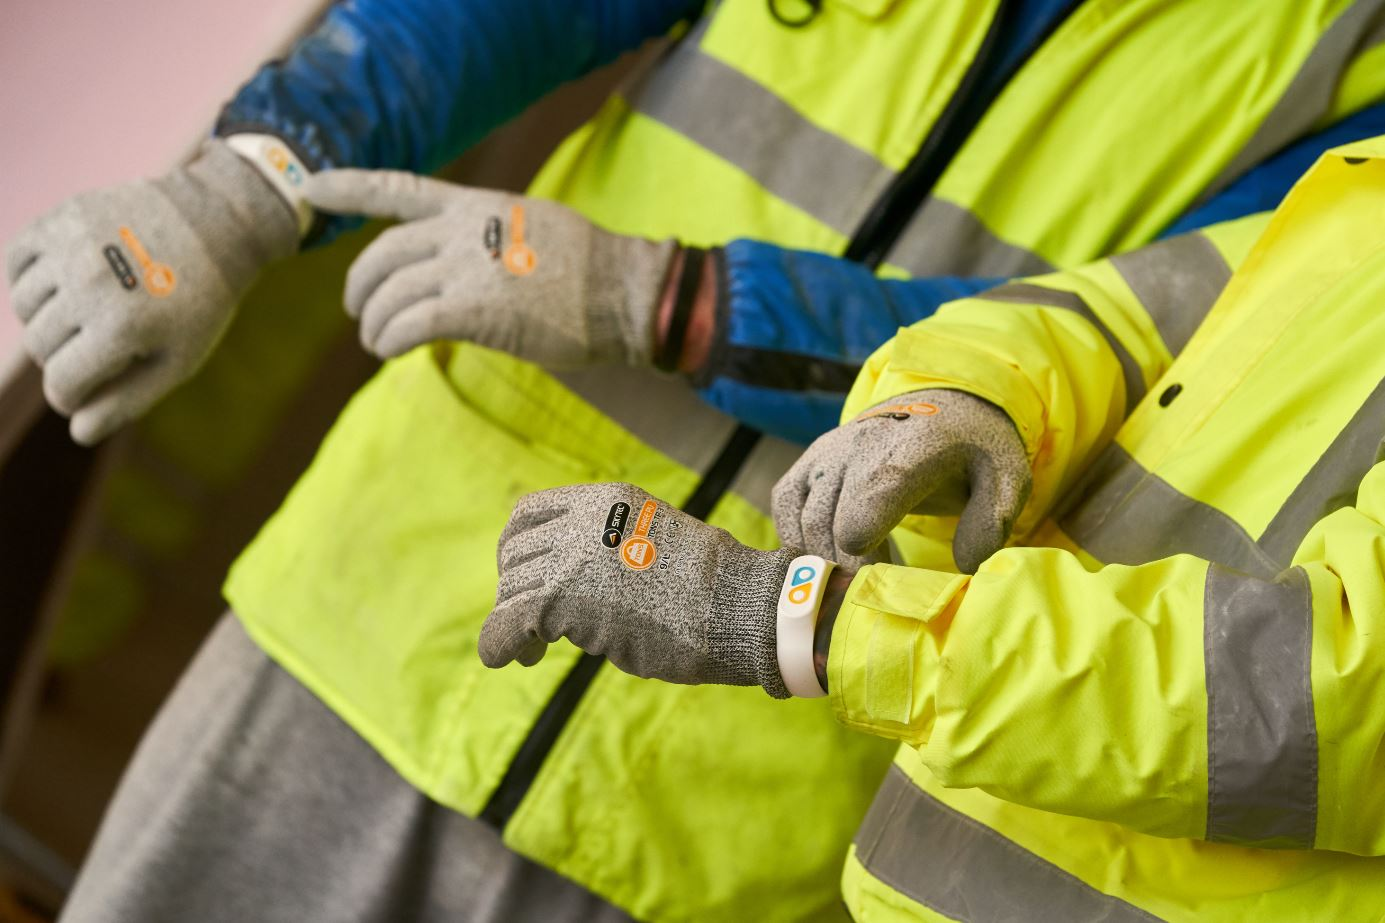 Health monitoring construction workers